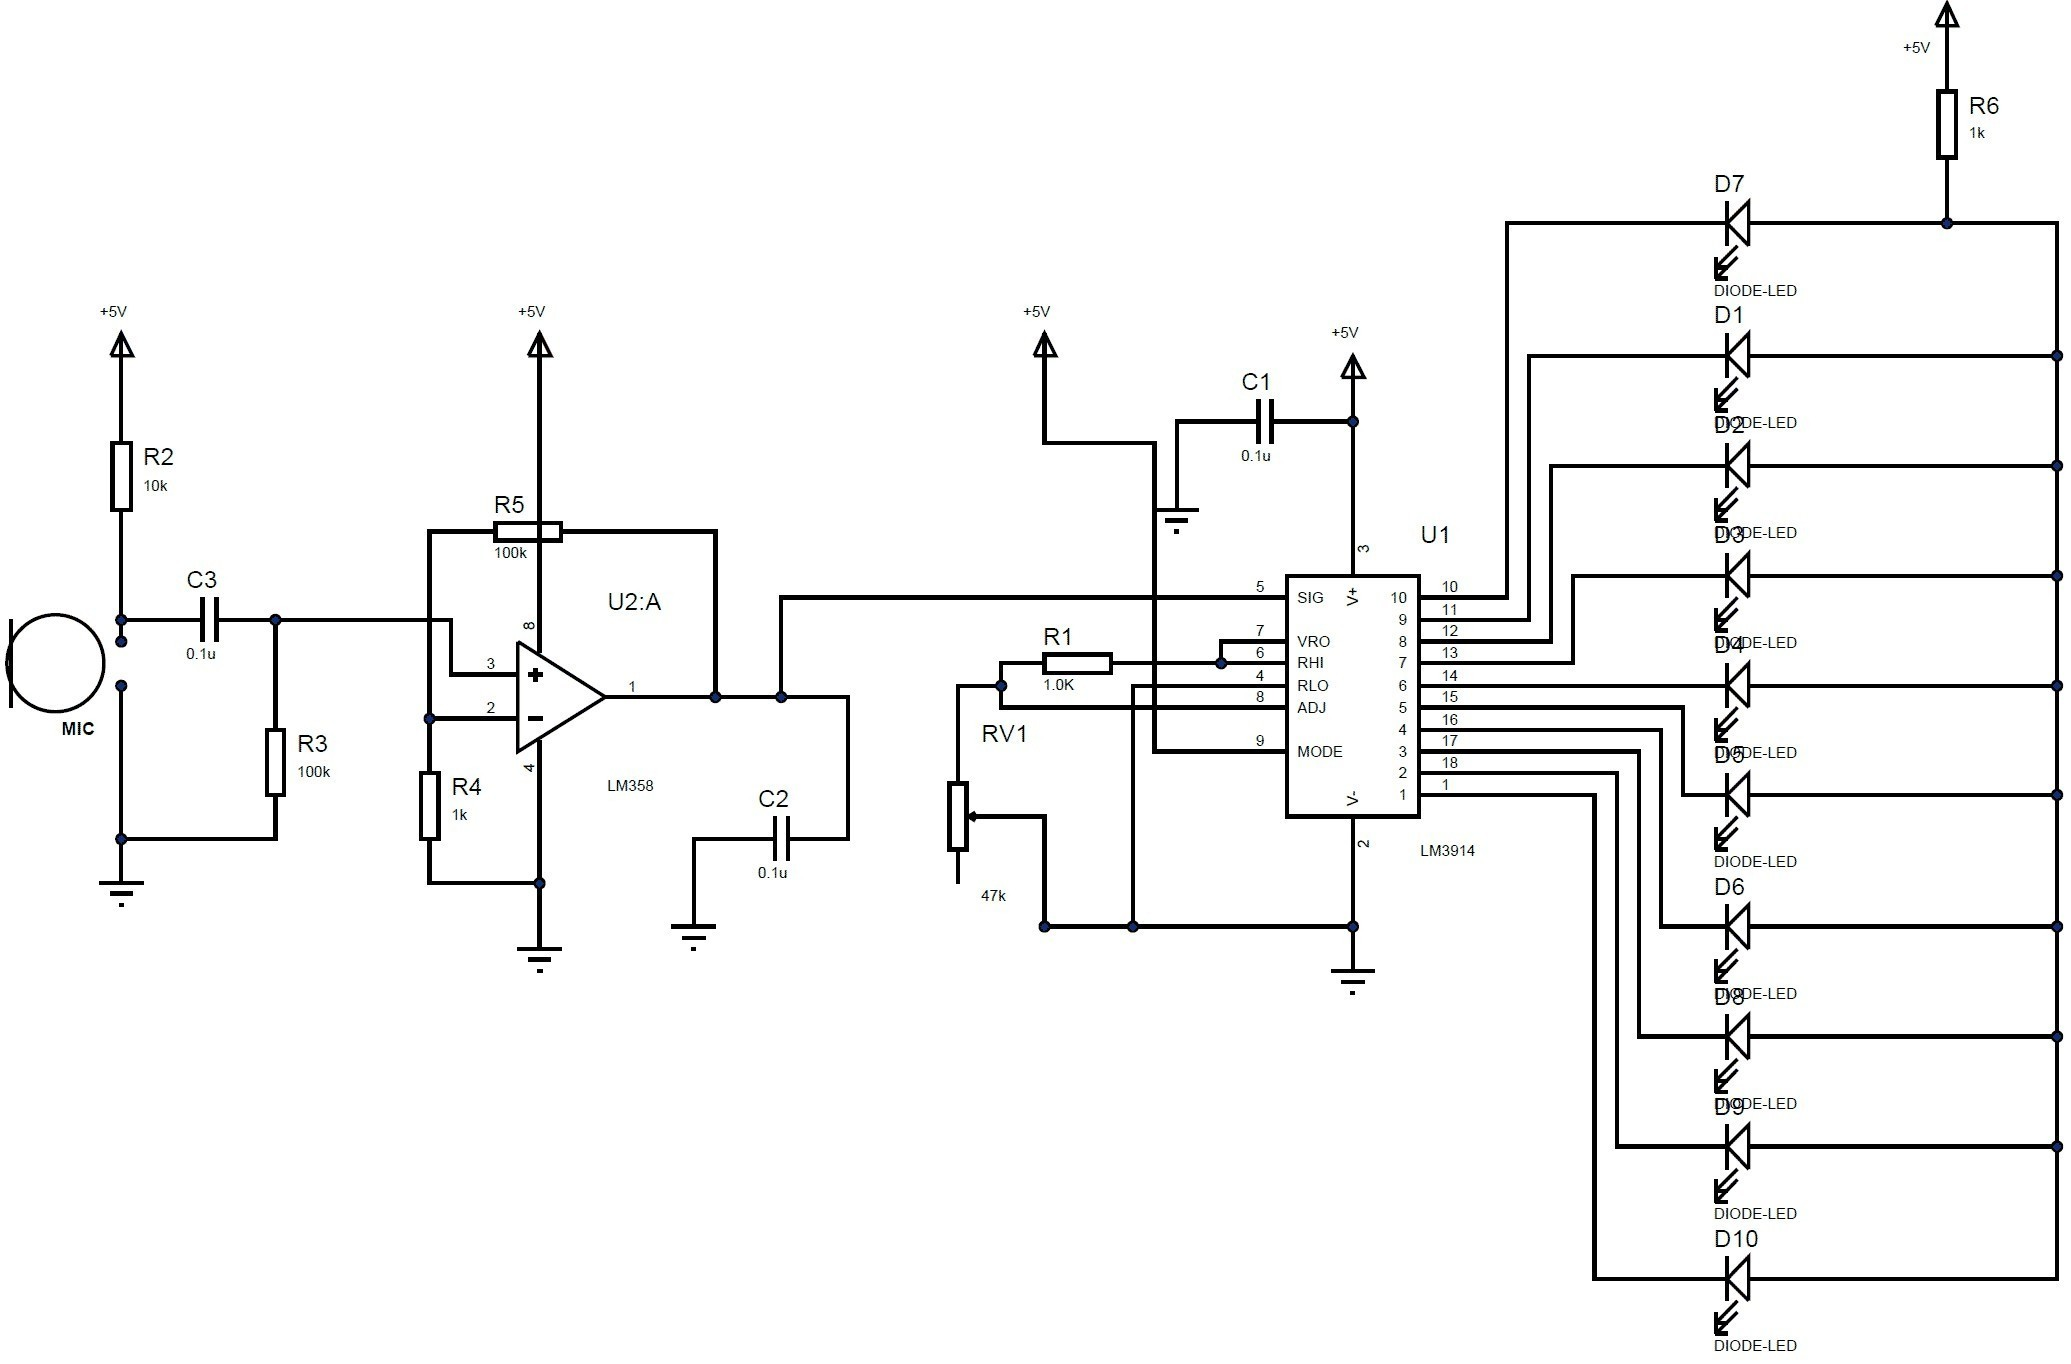 Wiring Diagram for A Light Switch Valid Supreme Light Switch Wiring Diagram 1 Way Creativity 0d